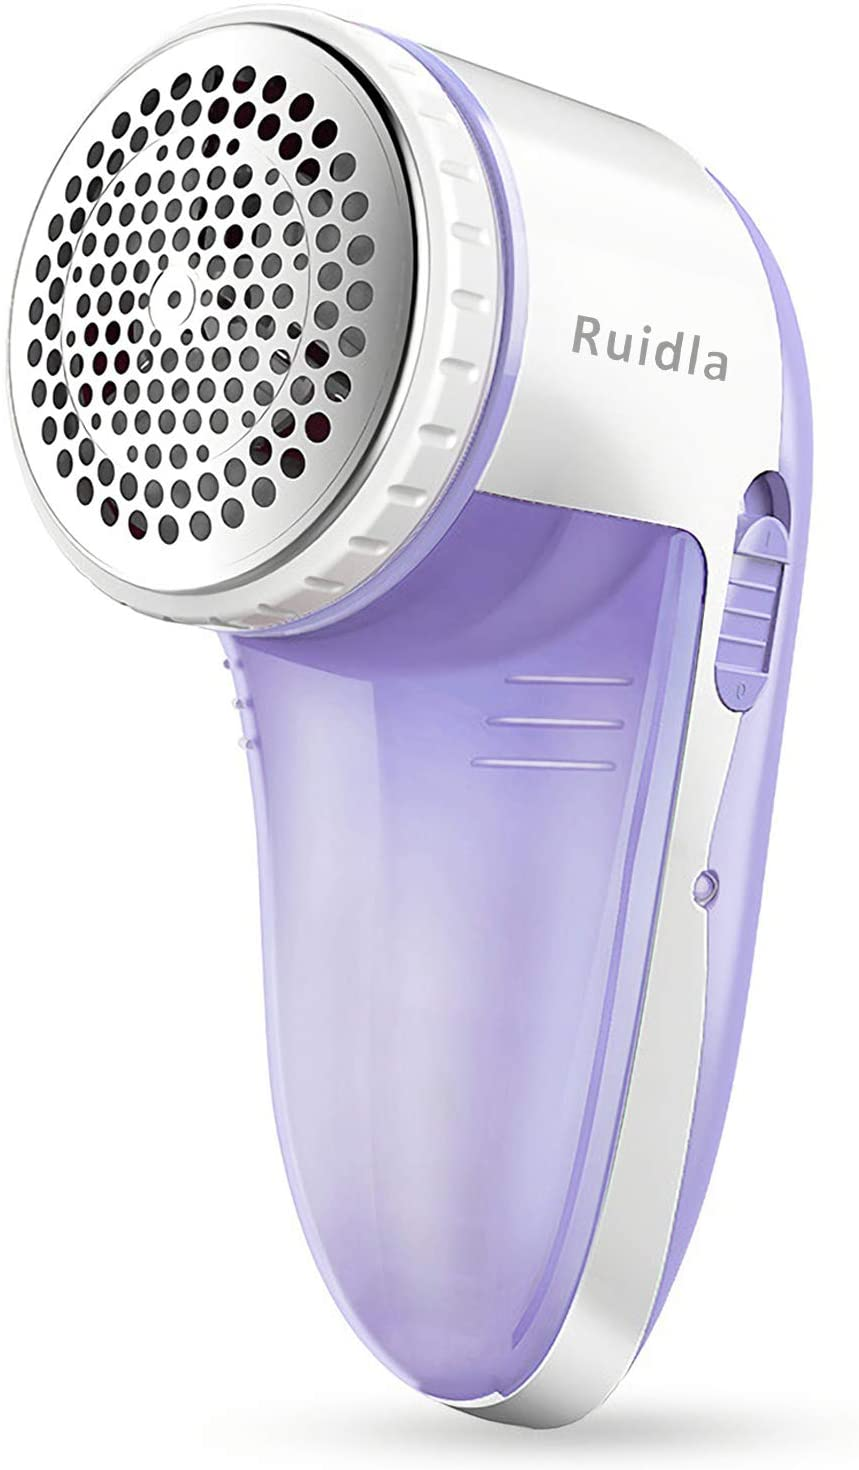 Ruidla Fabric Shaver - Electric Lint Remover for Couch